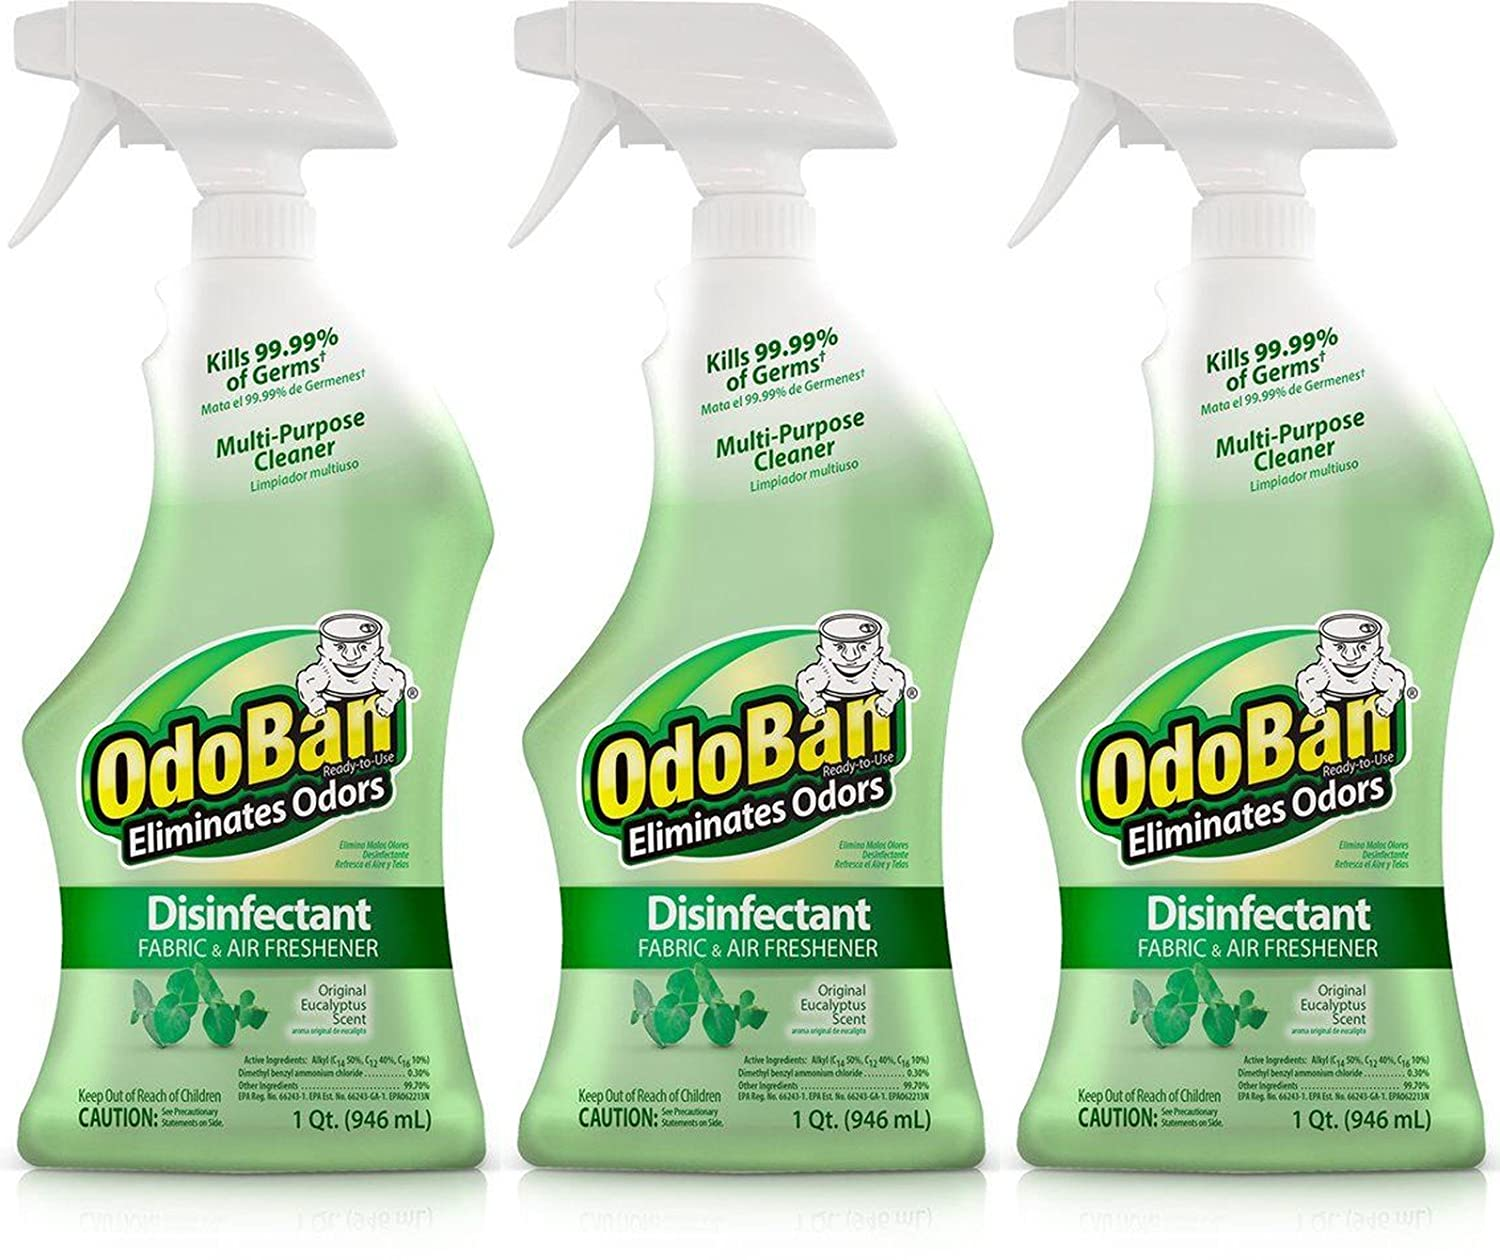 OdoBan 32 OZ Ready-to-Use Disinfectant Fabric and Air Freshener (Pack of 3) NA